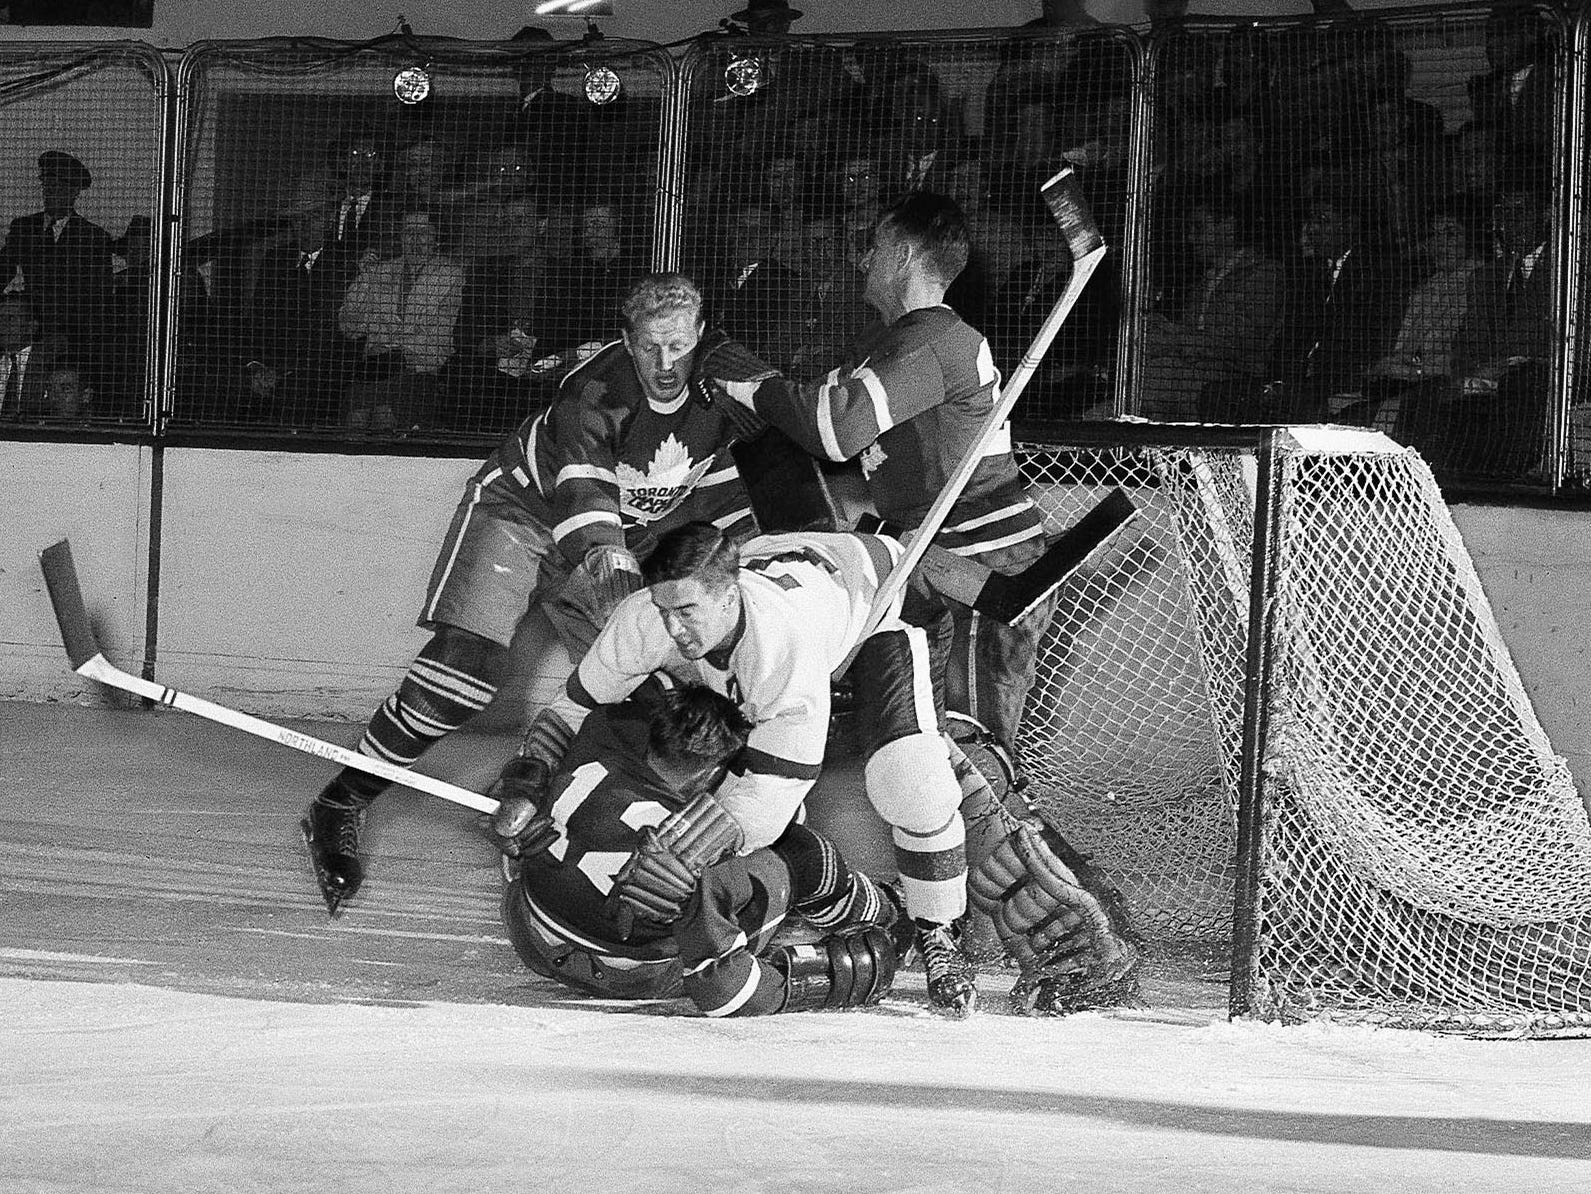 Ted Lindsay, Red Wings left wing attempts a goal in the first period of a game between the Detroit Red Wings and Toronto Maple Leafs, Oct. 14, 1951, Detroit. On the play Lindsay, white shirt no. 7, beneath him is Leafs Fernie Flaman (12) and Goalie is Al Rollins.